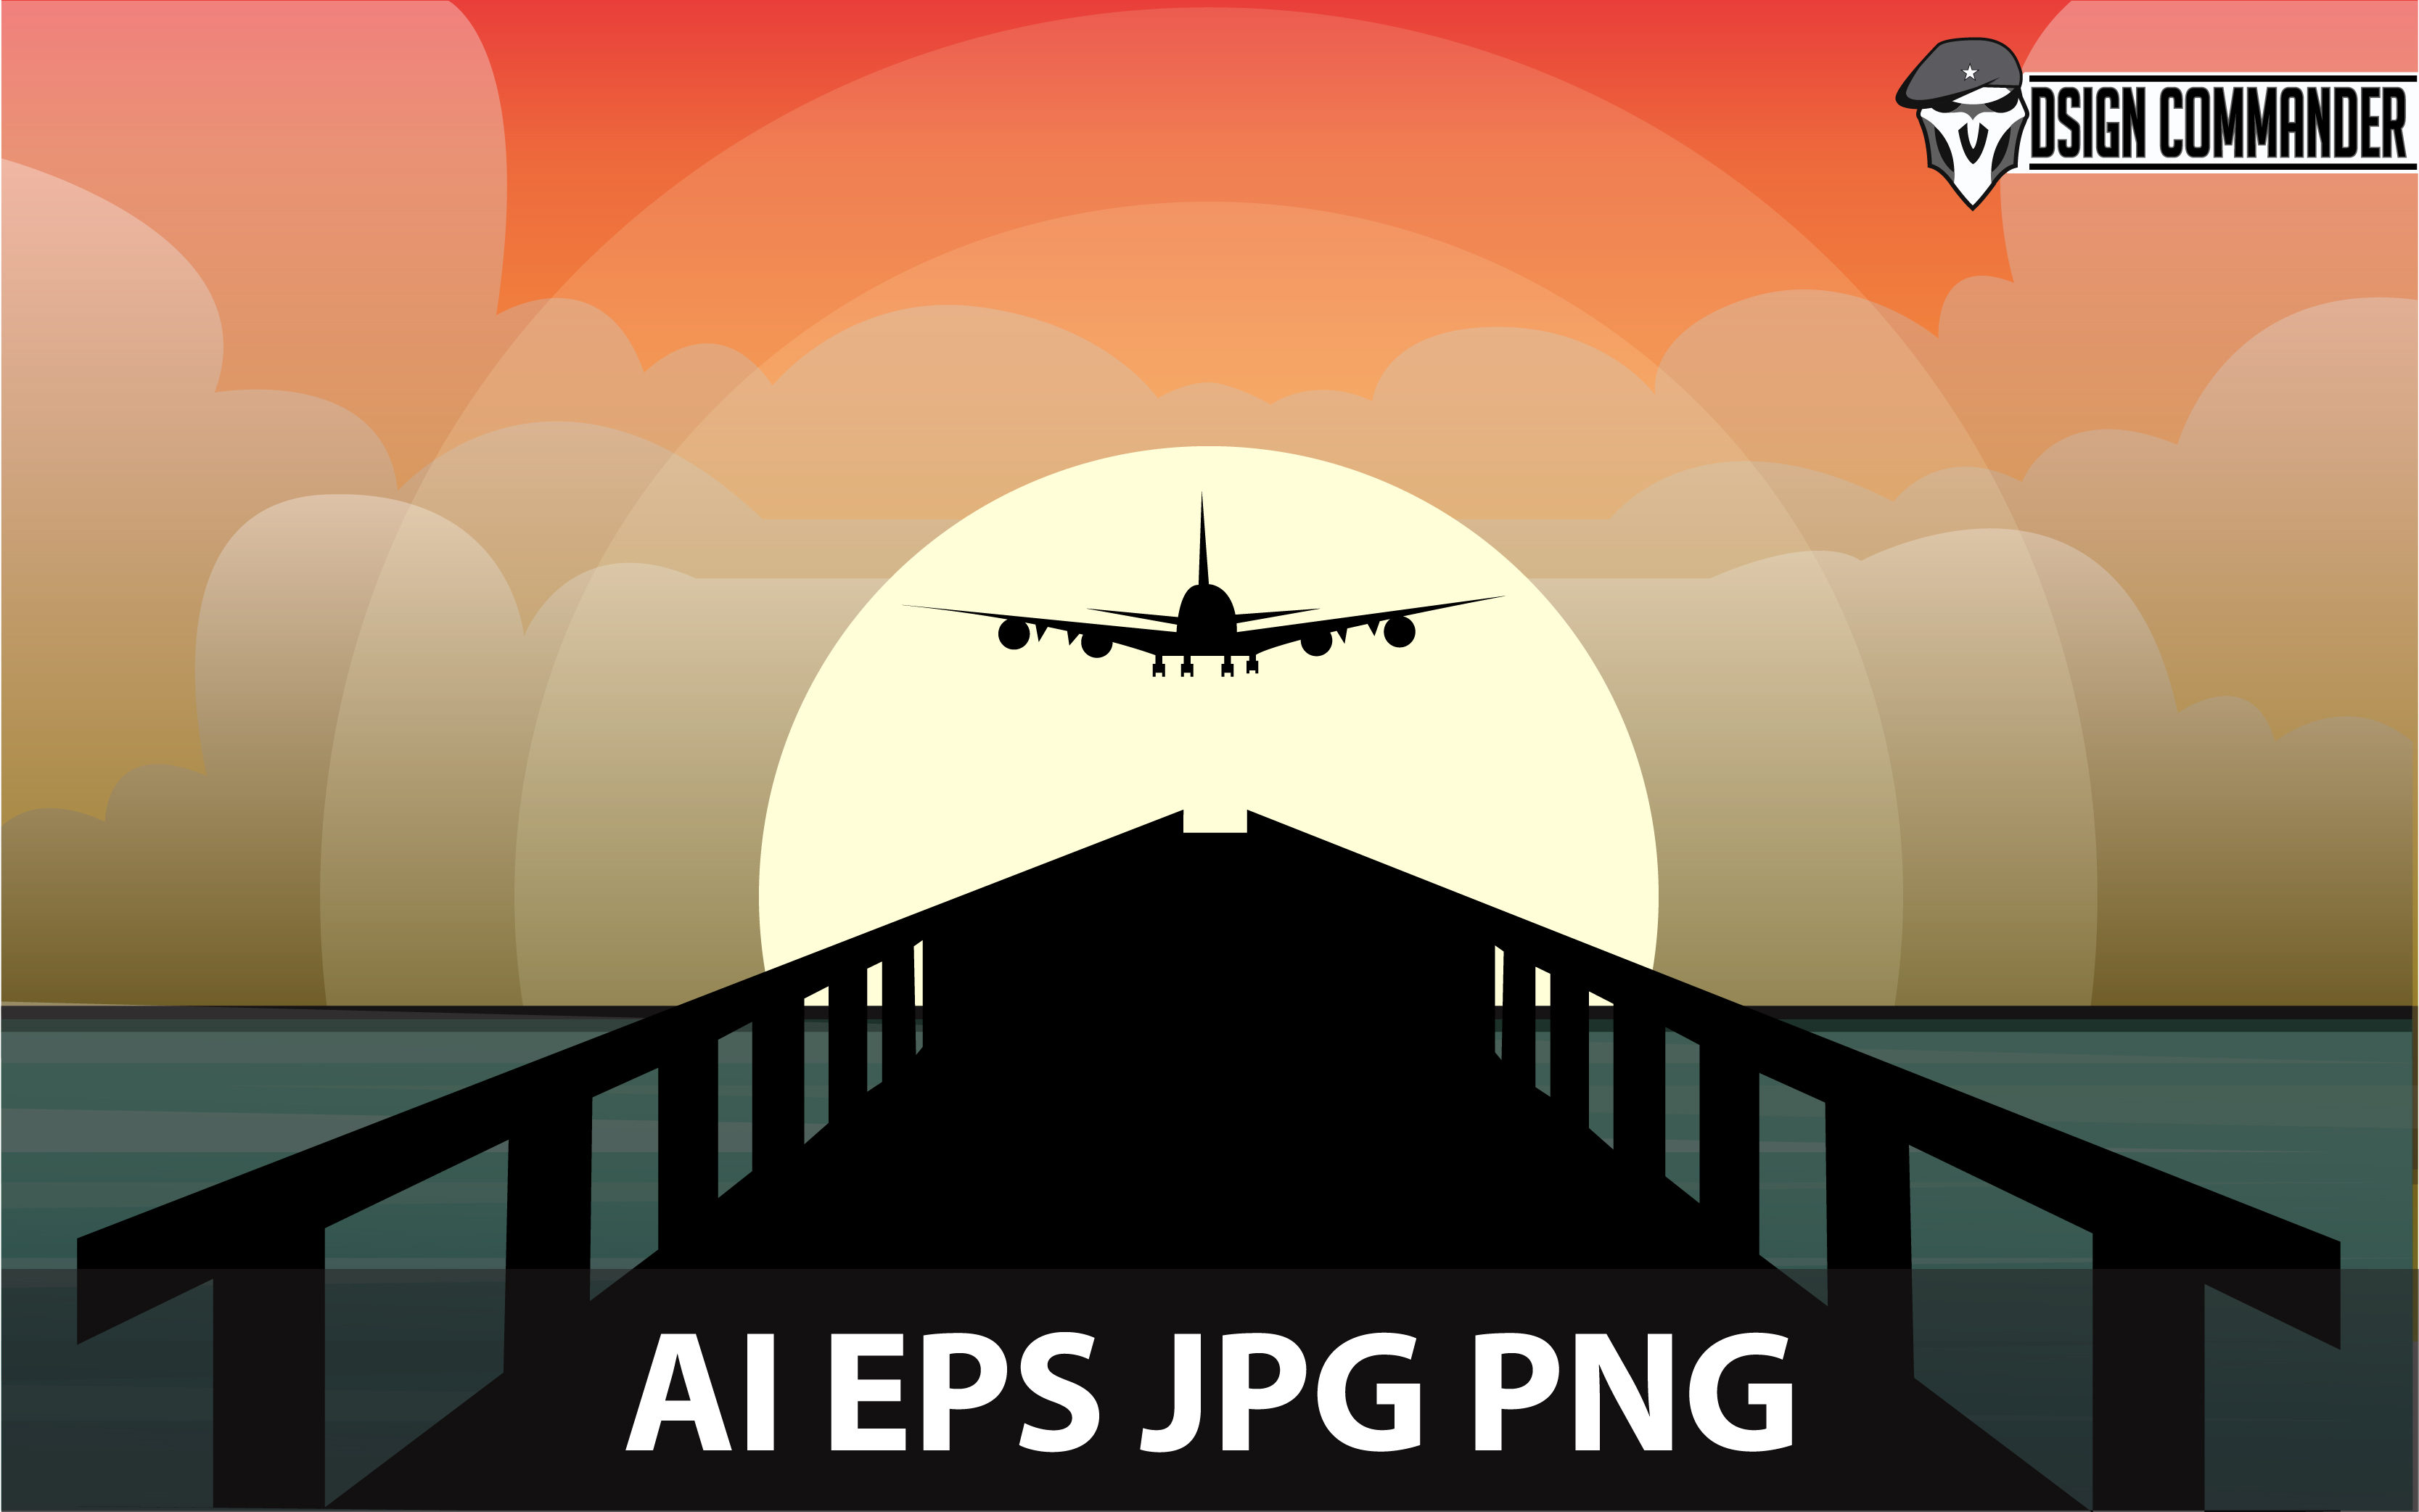 Aircraft And Bridge Silhouettes Vector Graphic By